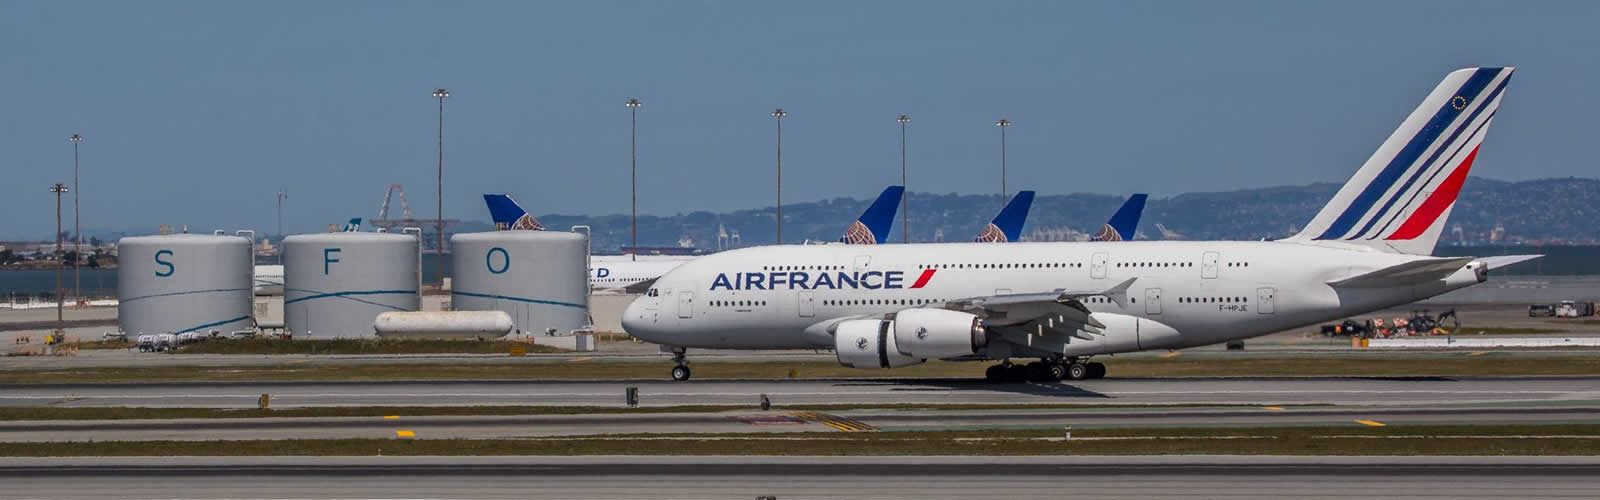 vols-directs-paris-san-francisco-compagnies-aeriennes-une